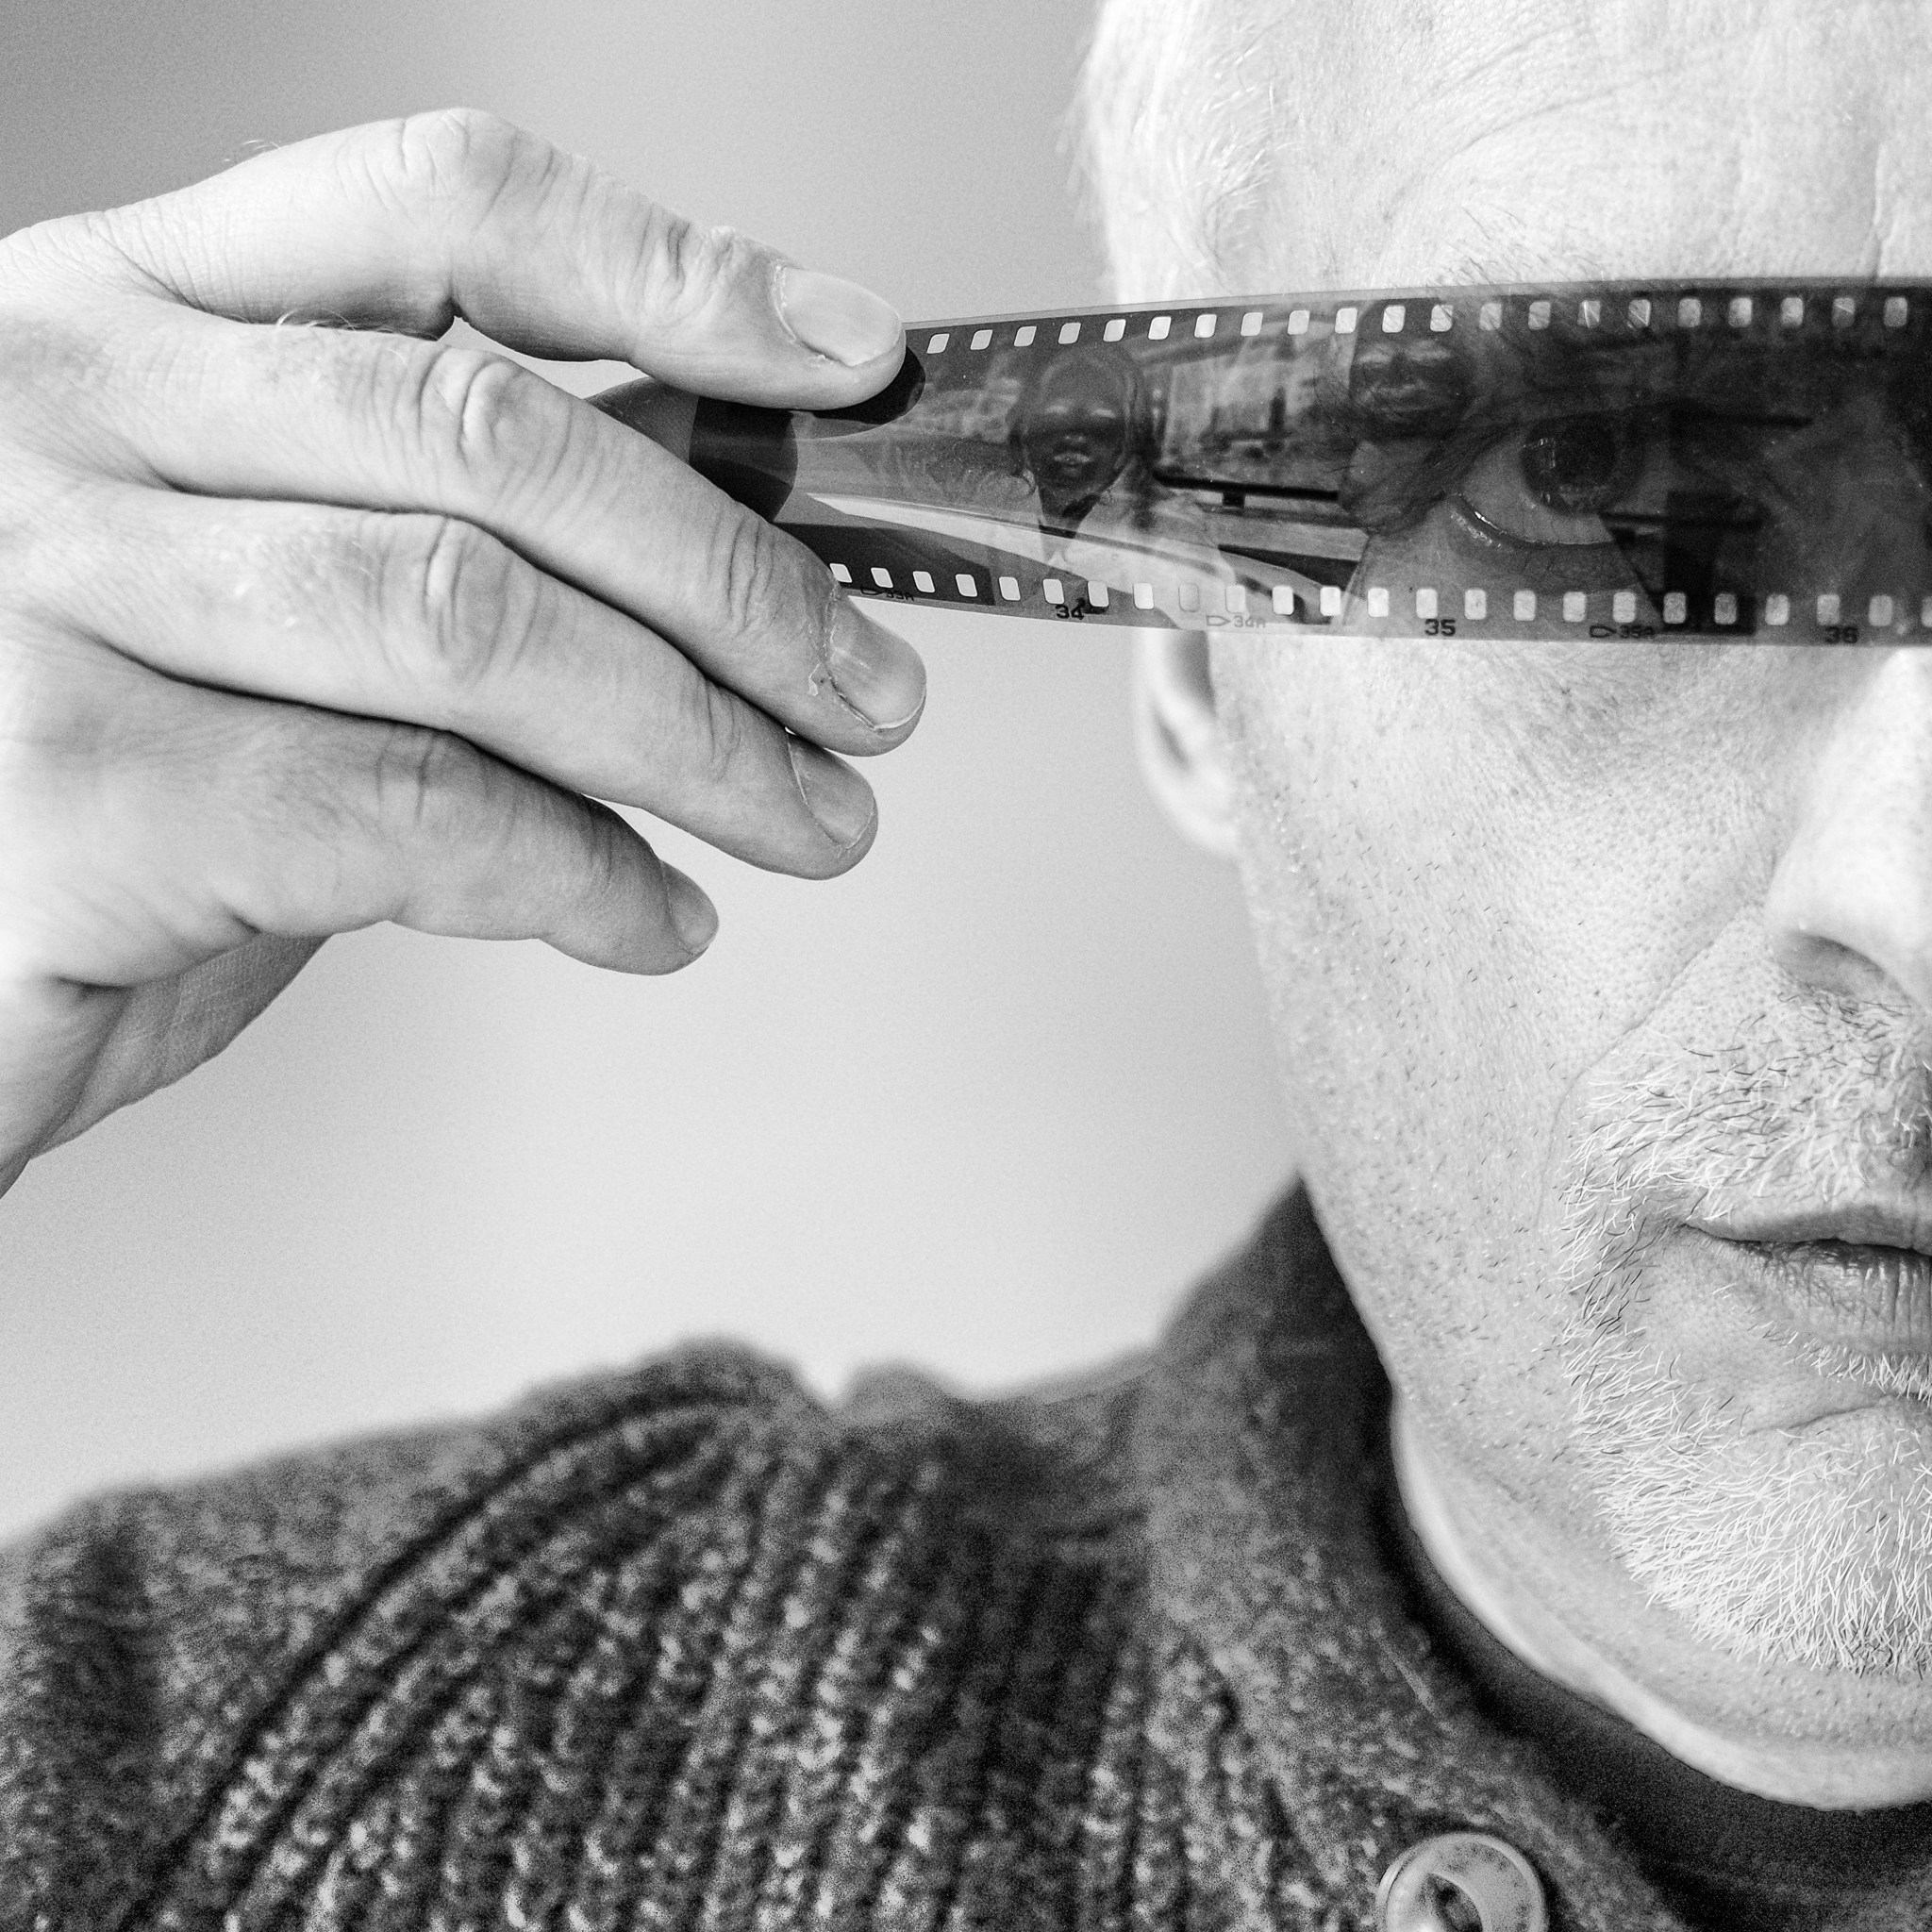 Sunday Selfie - 'I'm looking through you' - Visible Word - photograph (c) David Bailey (not the)